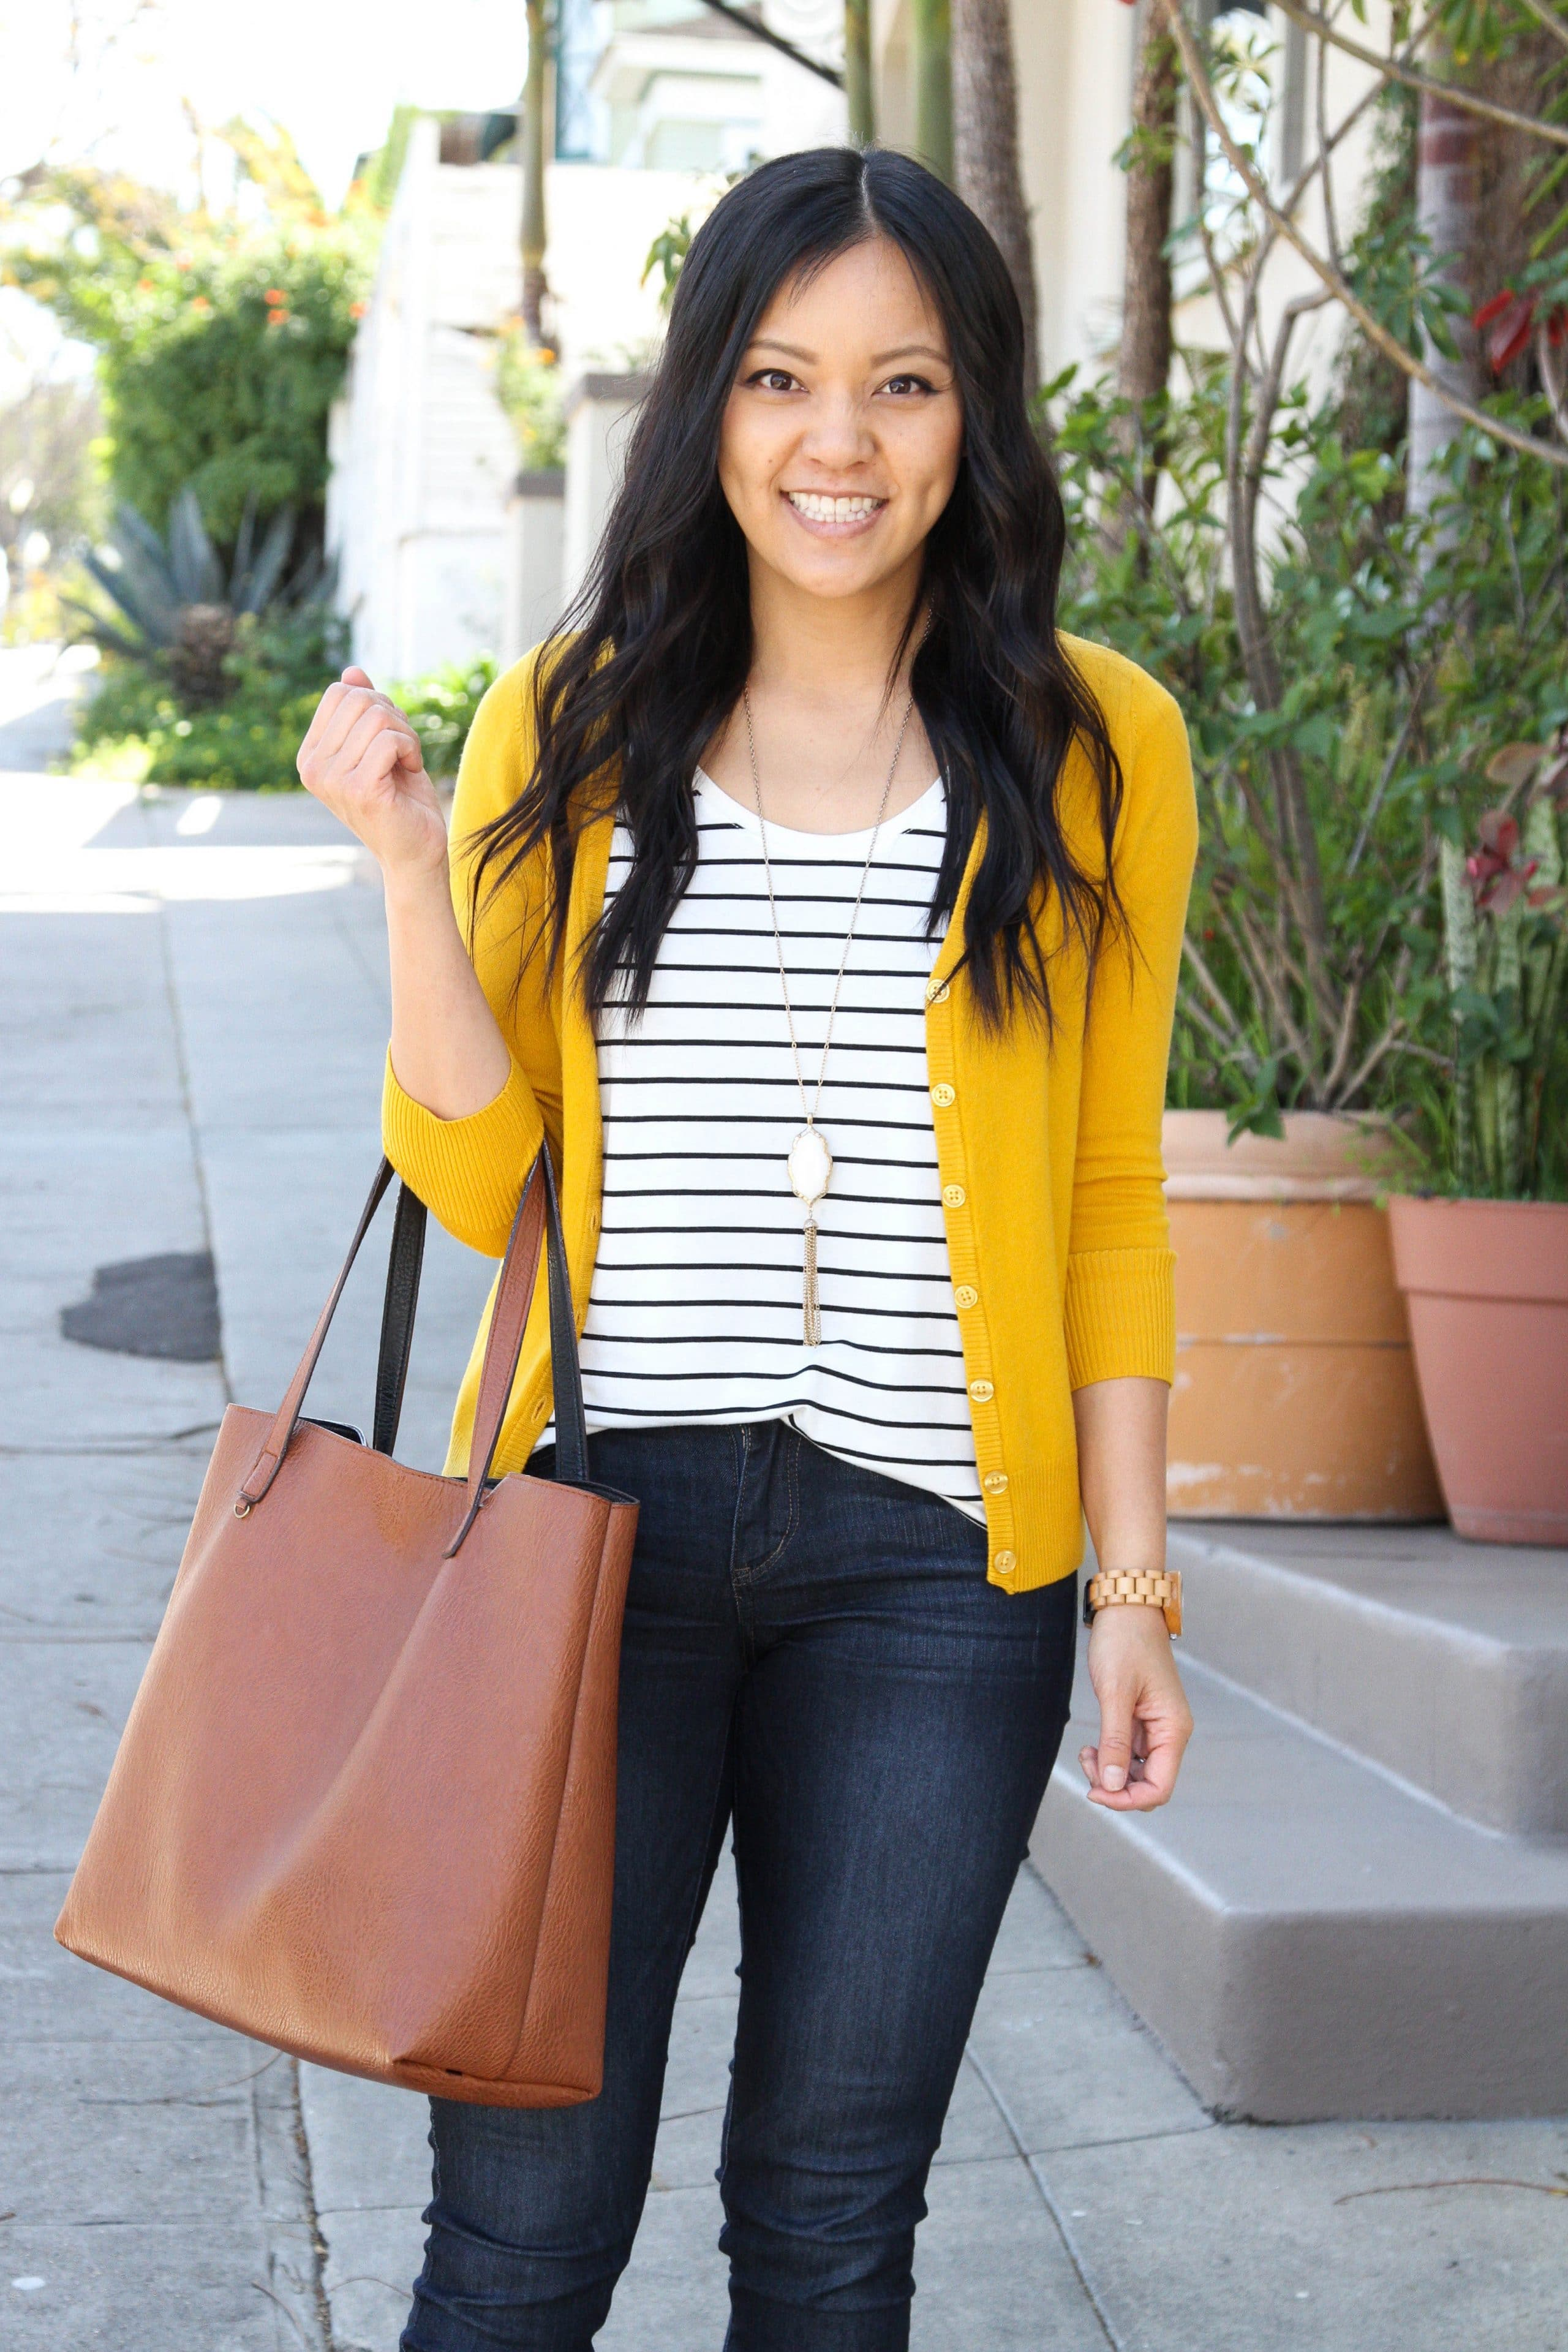 yellow cardigan + striped tee + skinny jeans + brown tote